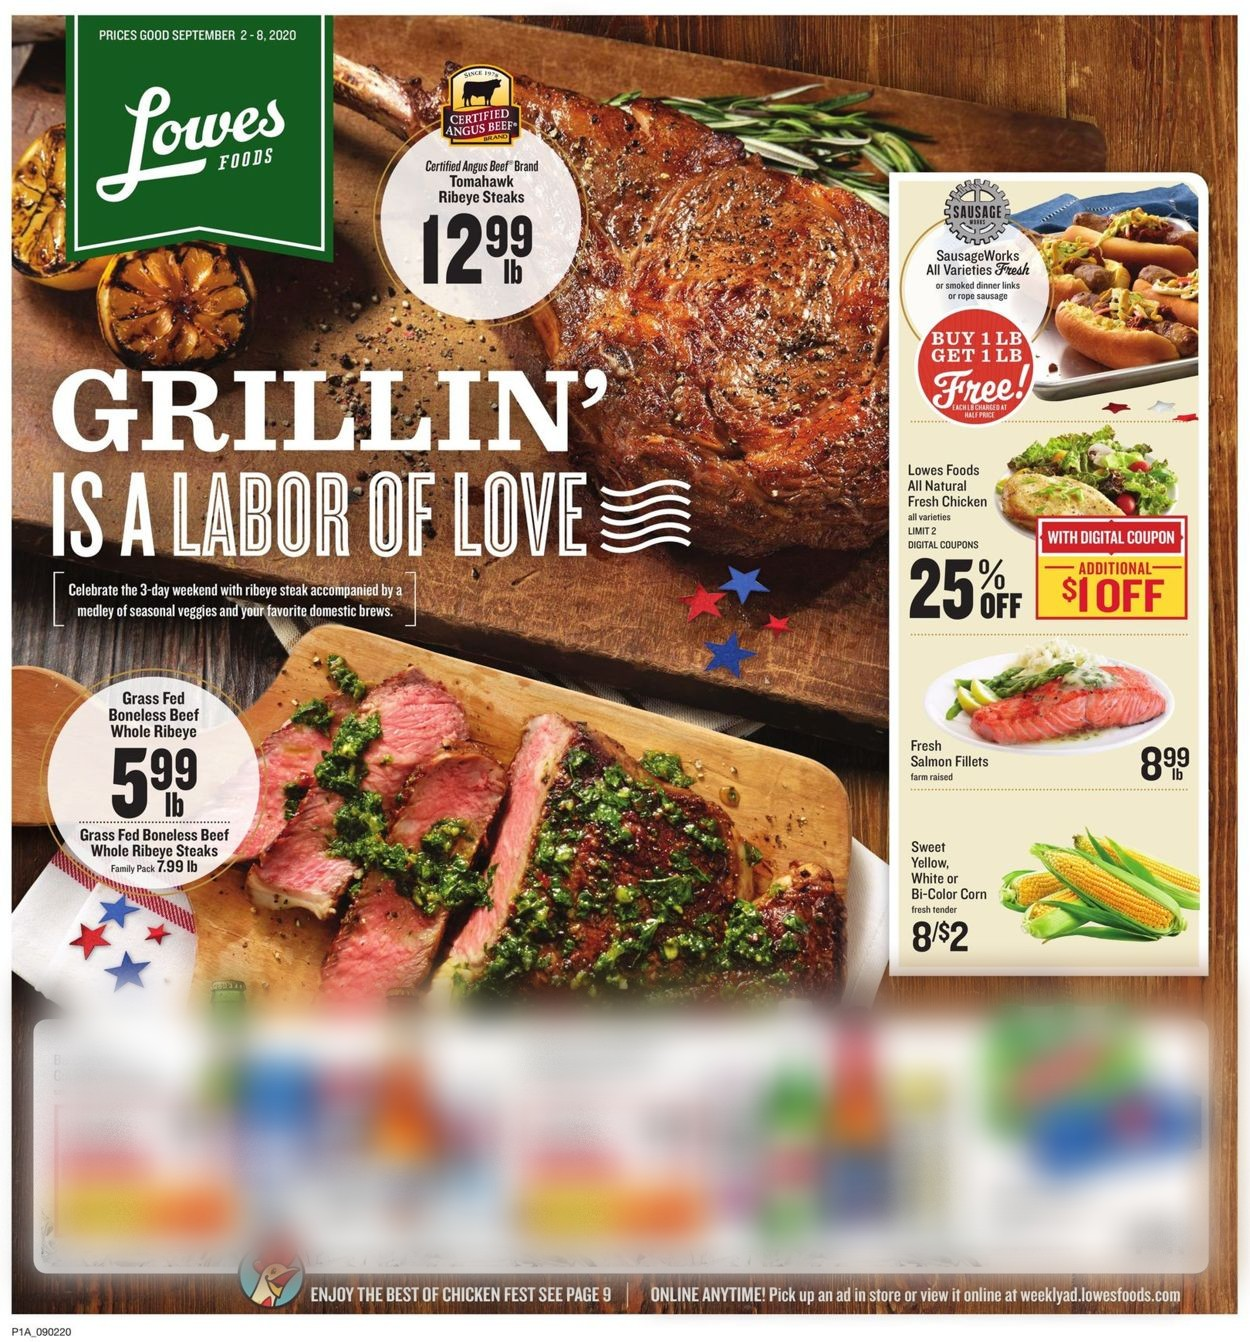 Lowes Foods Current weekly ad 09/02   09/08/2020   frequent ads.com